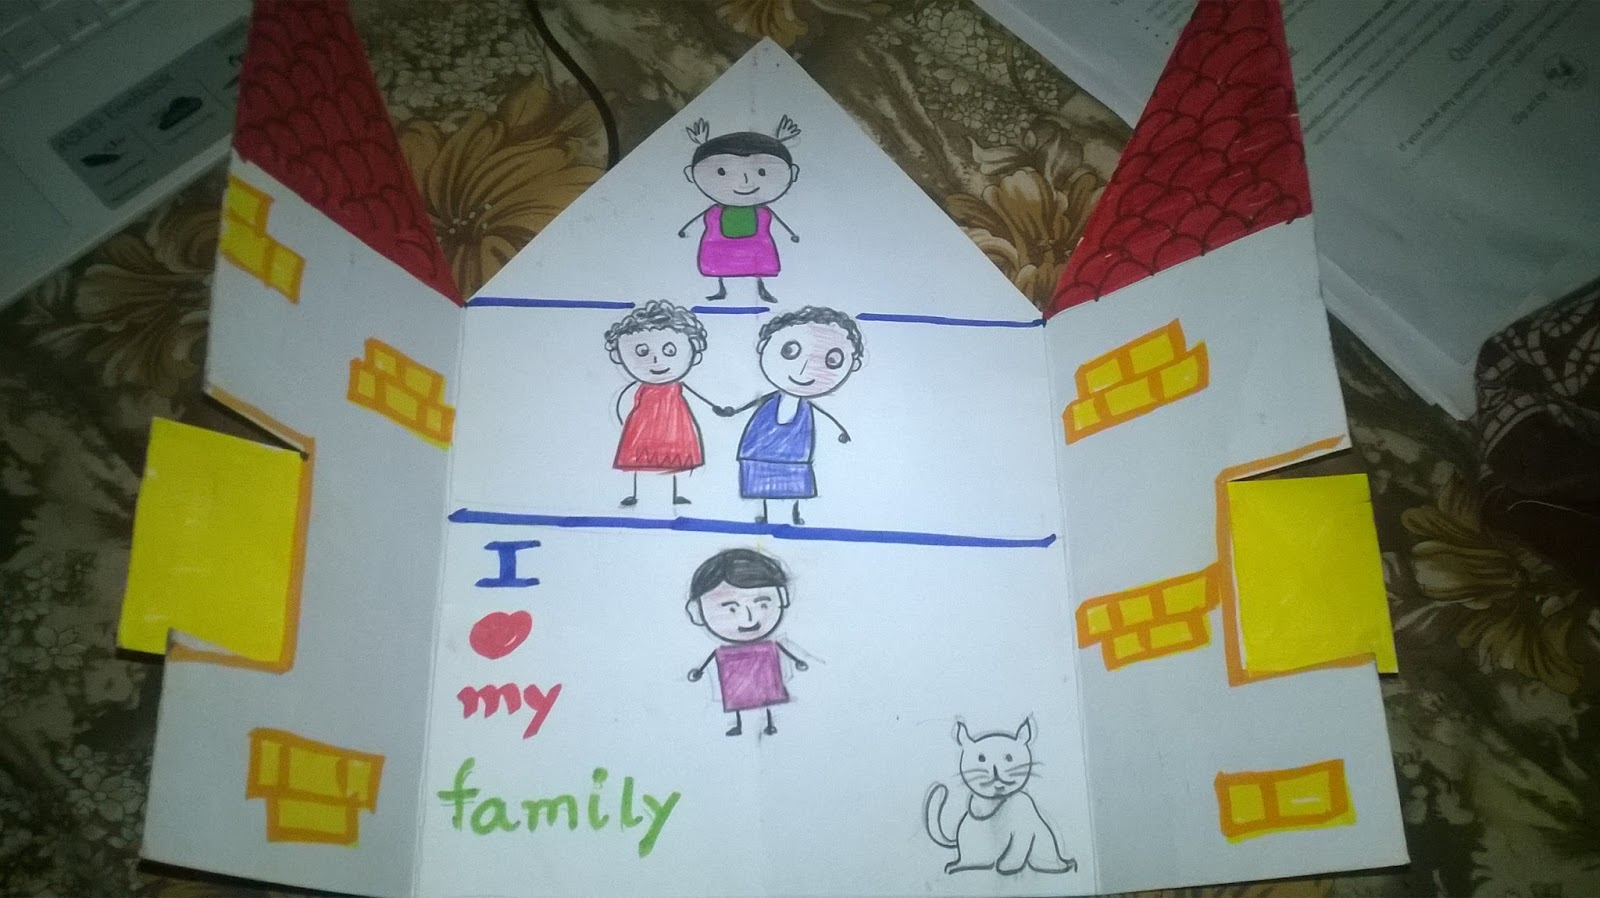 Learner Centered Activities To Teach My Family For Primary